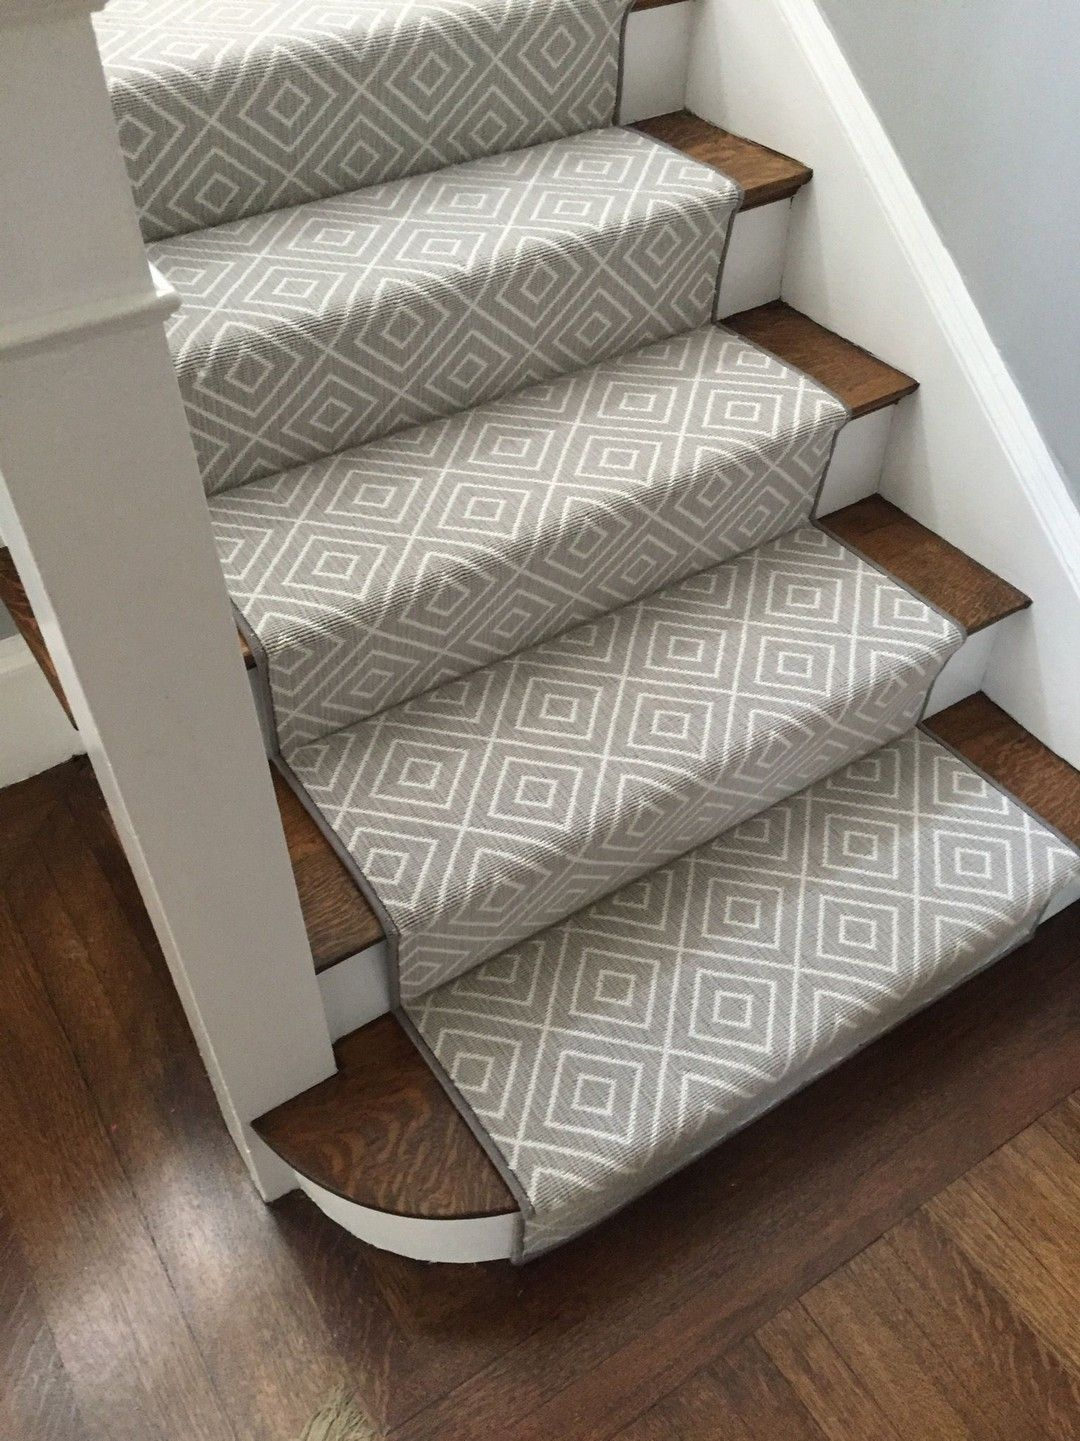 Elegant Painted Stair Runner For Amazing Home Interior In 2020